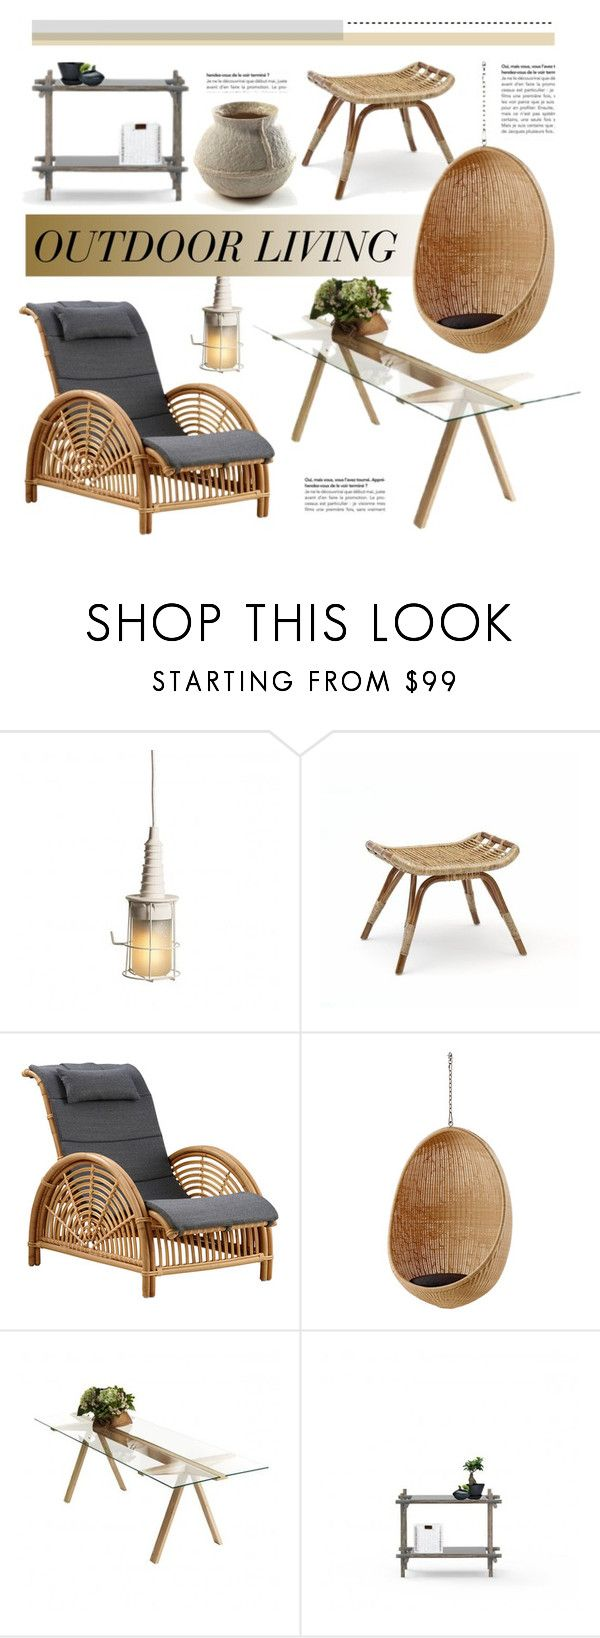 """""""Outdoors"""" by lovethesign-eu ❤ liked on Polyvore featuring interior, interiors, interior design, home, home decor, interior decorating, Sika, Serax, Home and outdoors"""